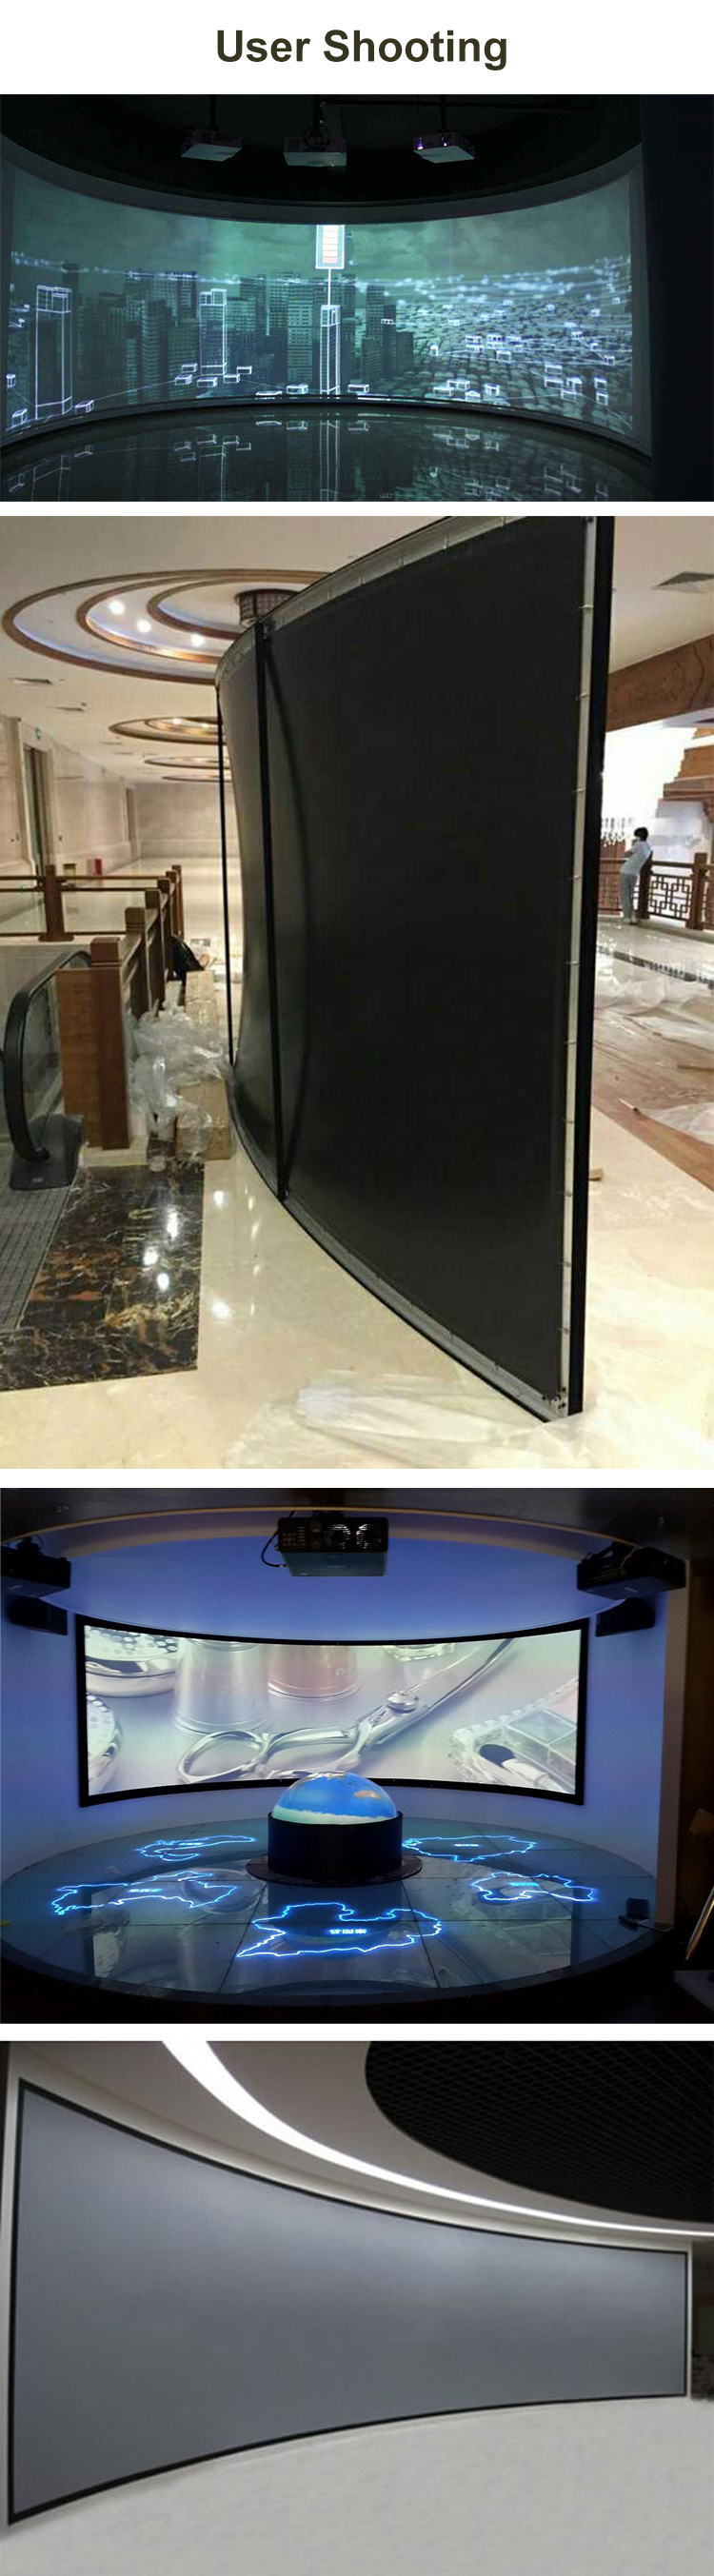 4:3 Cinema Black Velvet Curved Fixed Frame Projector Screen 84 Inch 3D Projection Screen Best For Home Theater